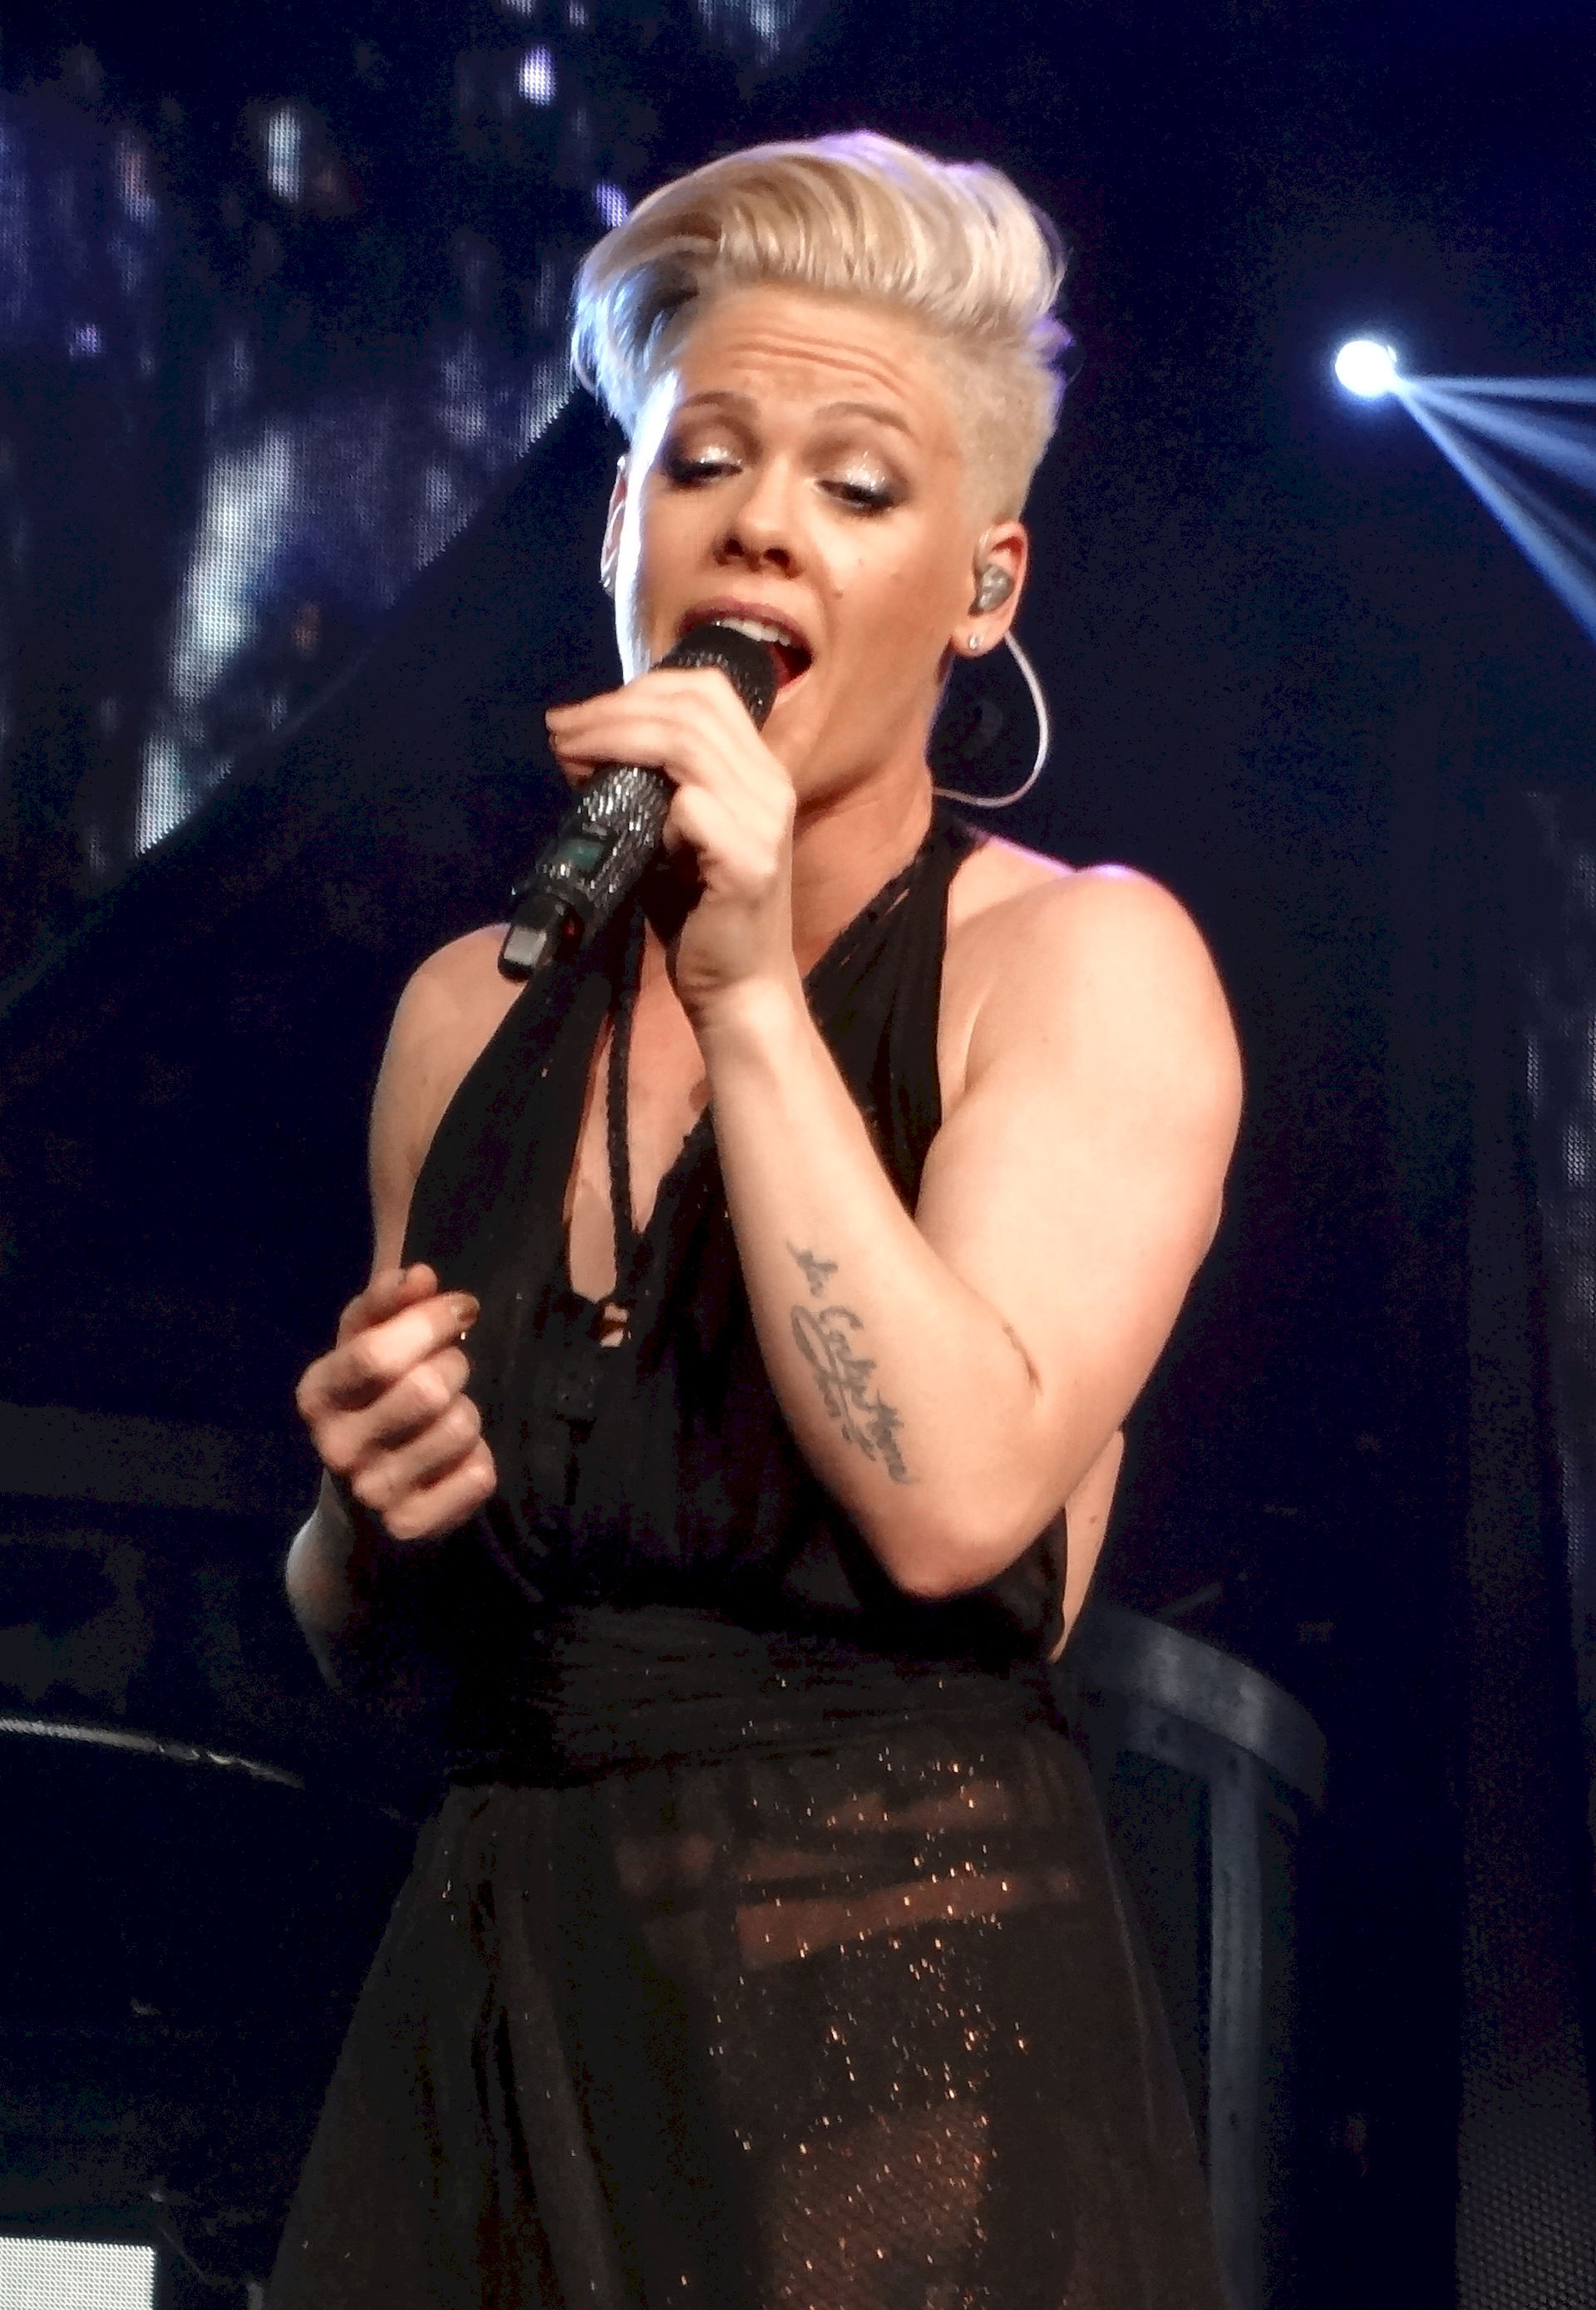 Photo of Pink (singer): American singer, songwriter, and actress